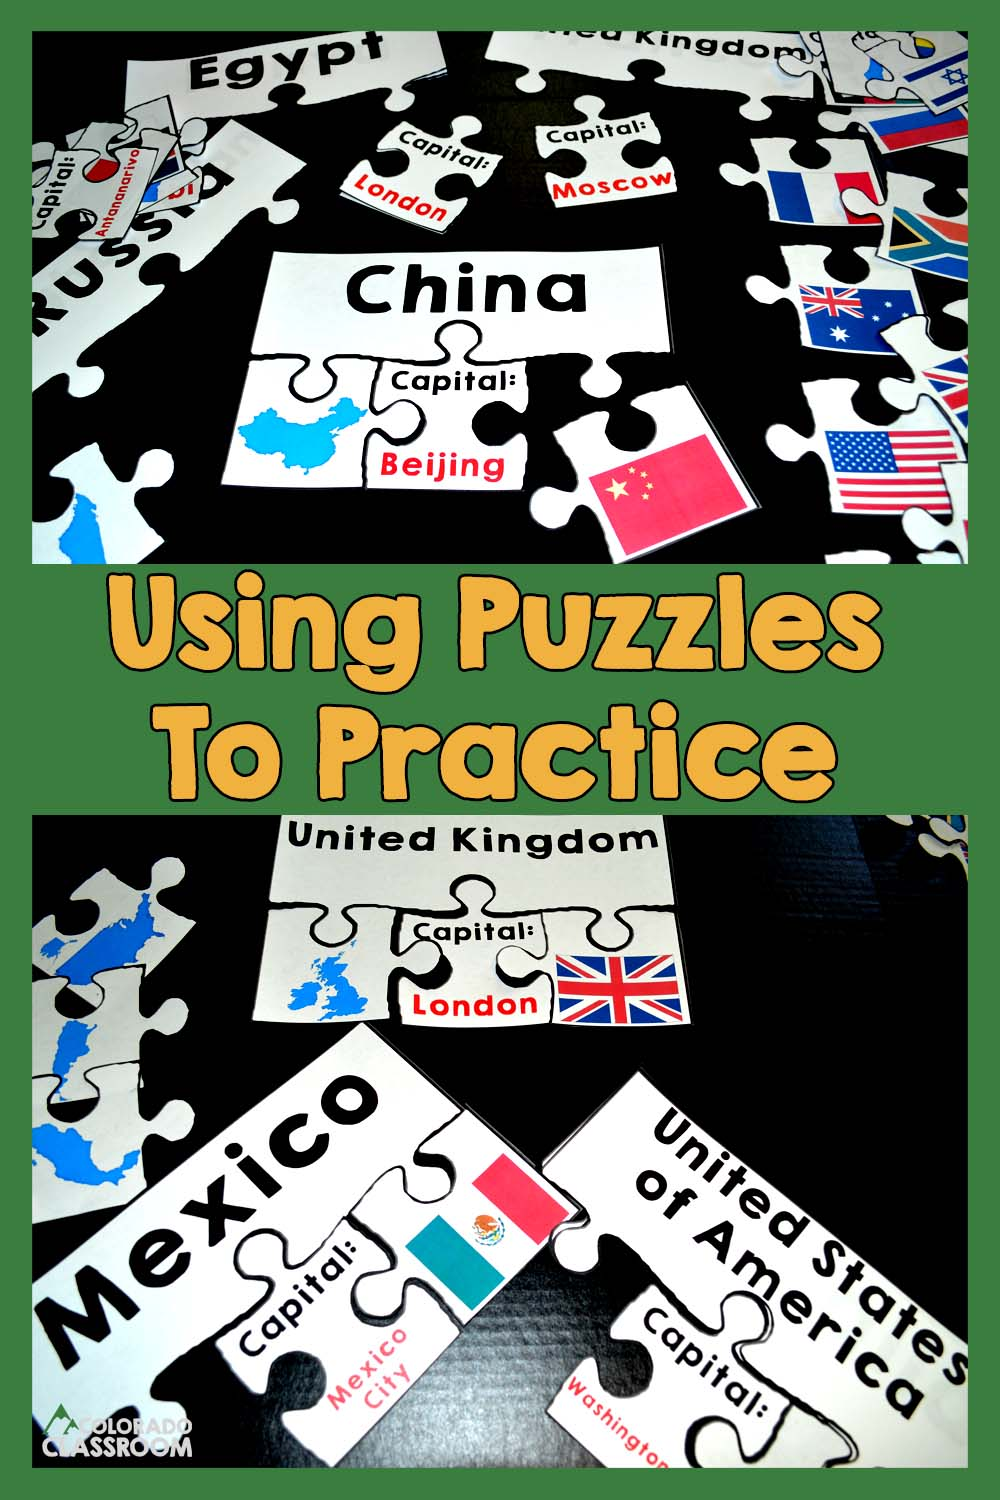 """Two pictures of geography puzzles to practice map skills with the text """"Using Puzzles to Practice"""" on top and the logo """"Colorado Classroom"""" in the bottom left."""